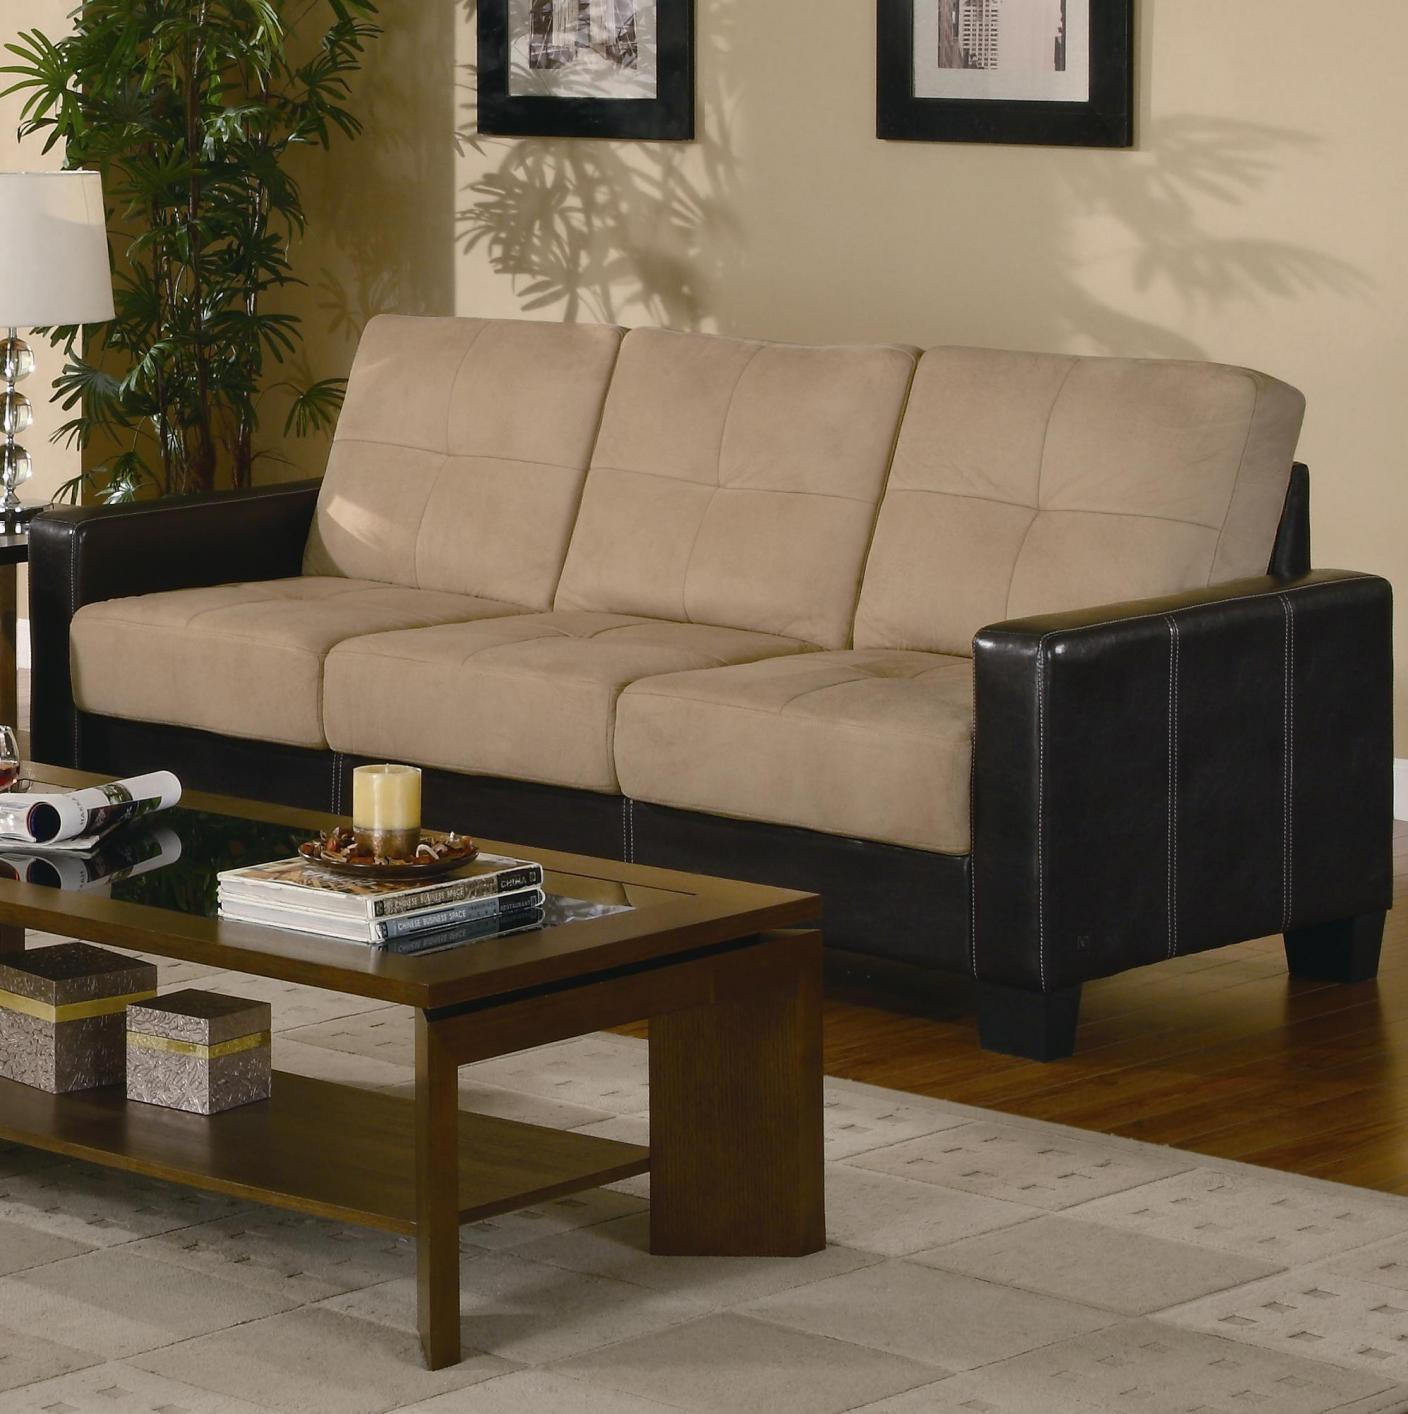 Beige Leather Sofa Loveseat And Chair Set Steal A Sofa